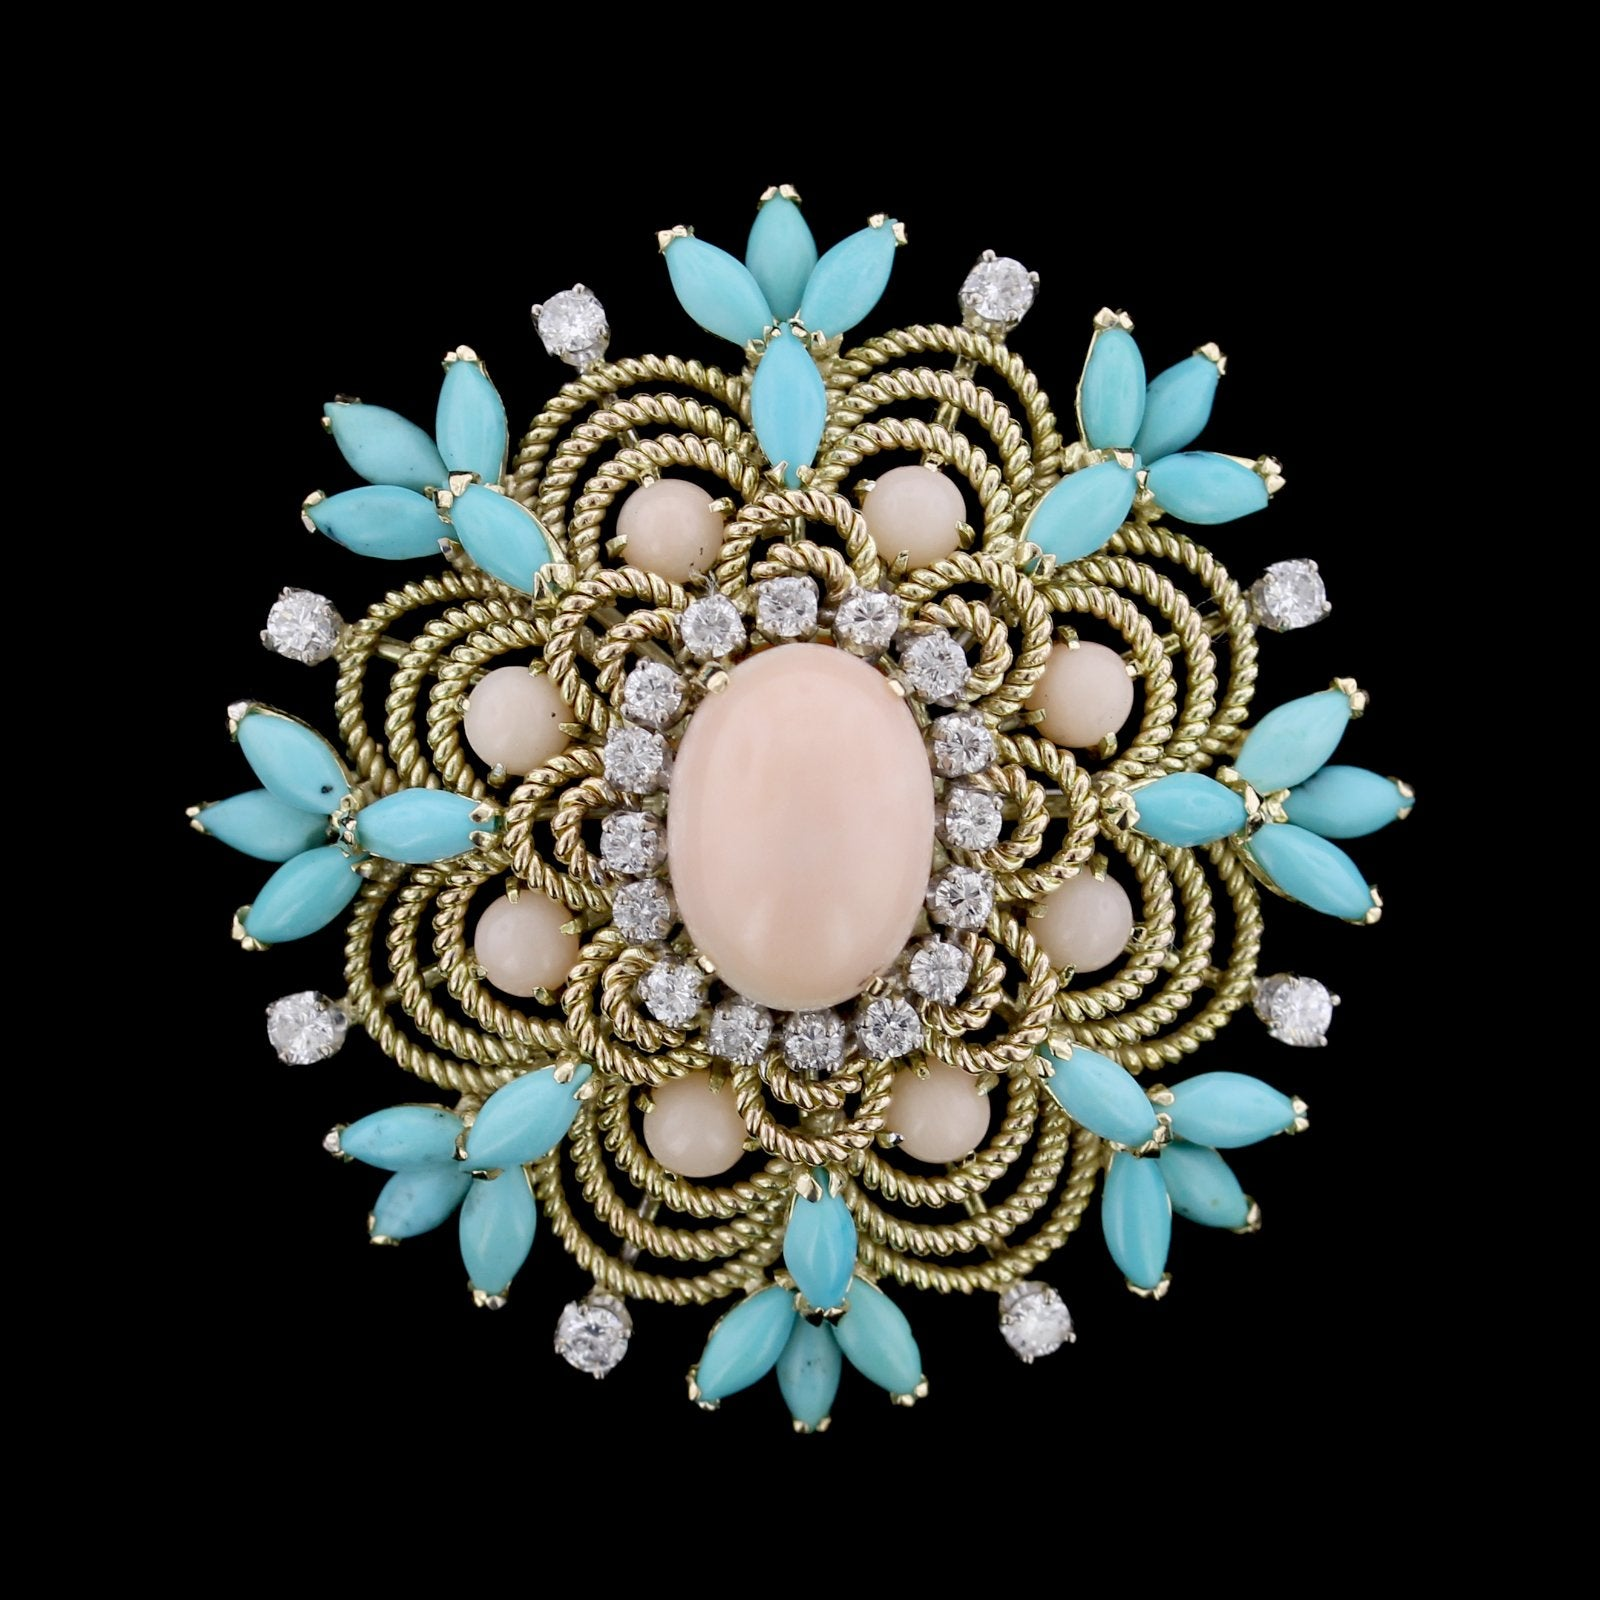 14K Yellow Gold Estate Turquoise, Coral and Diamond Pin